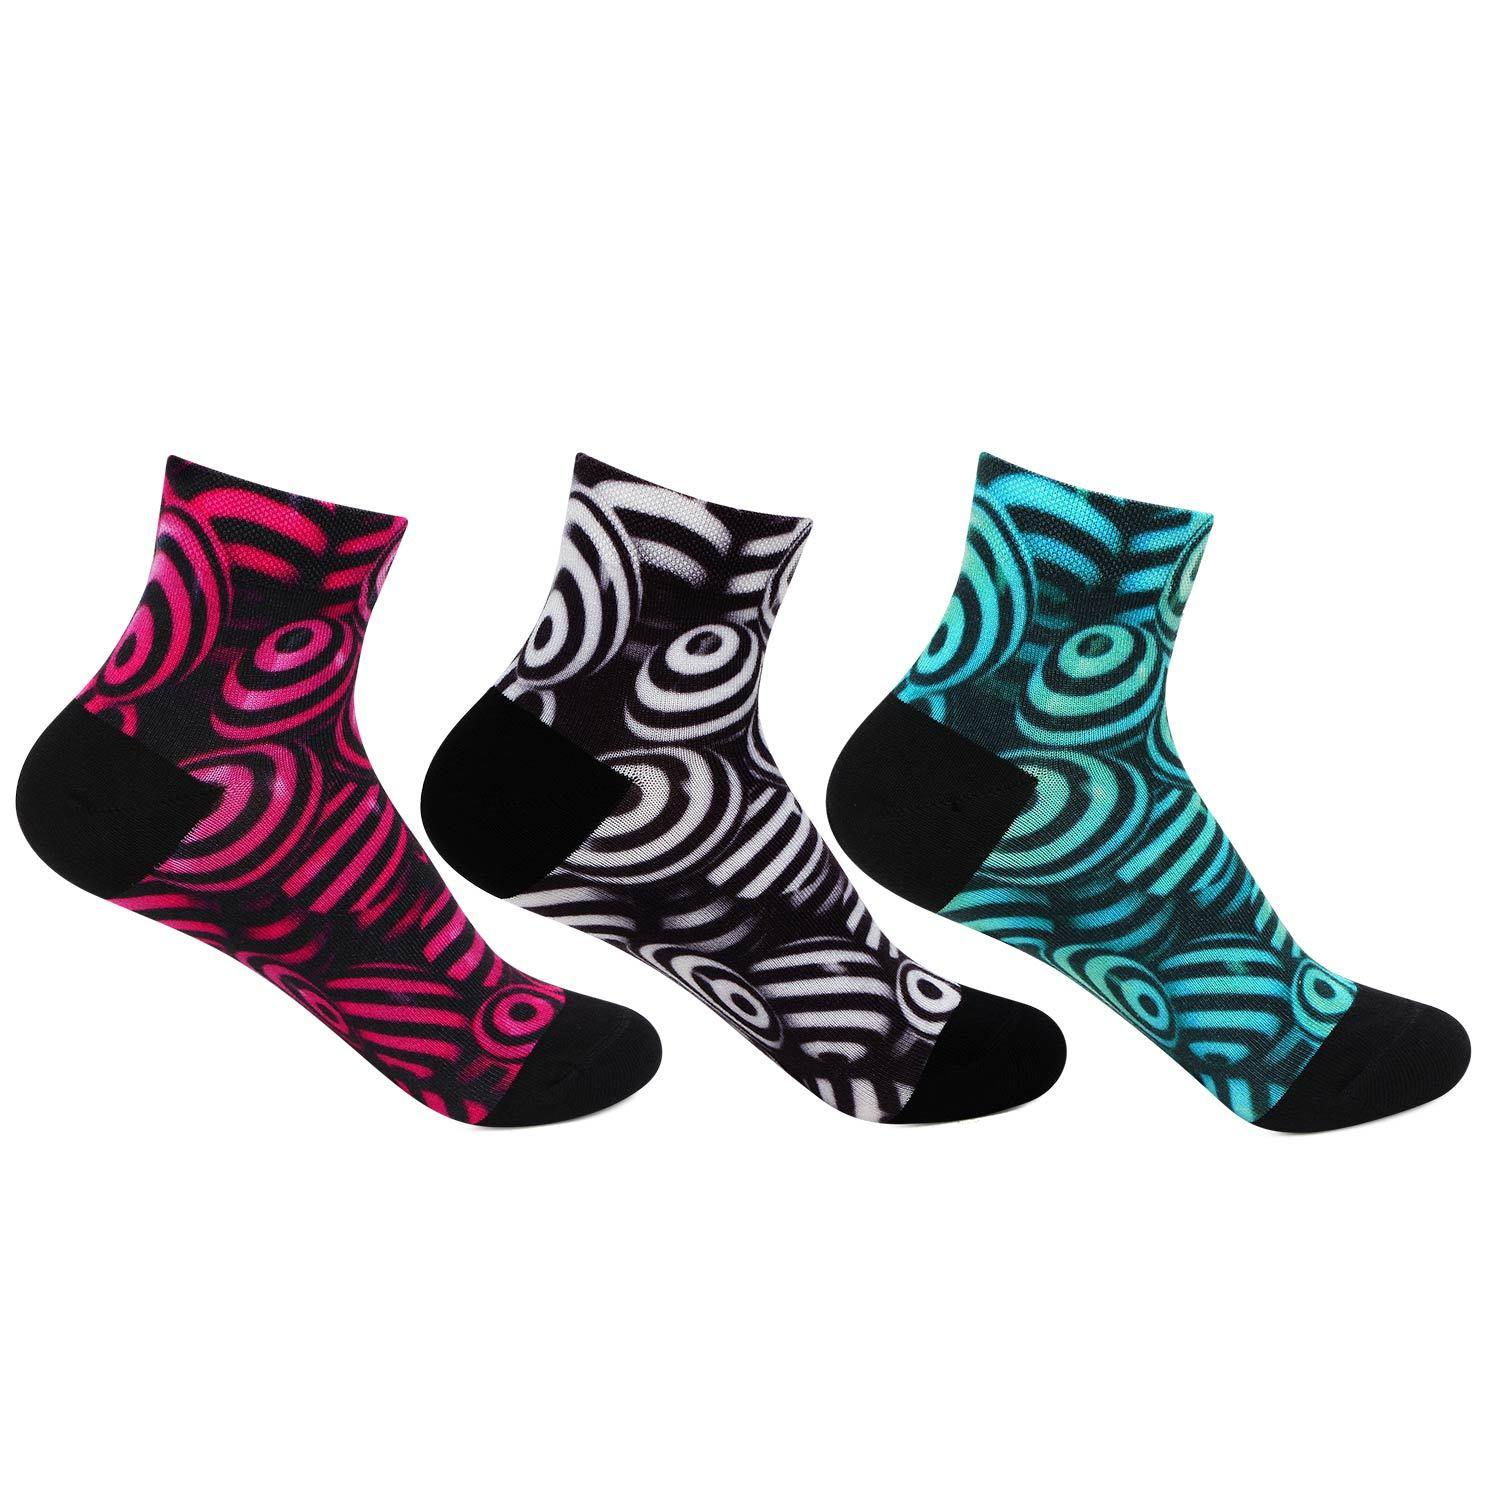 Women's Colorful Fantasy Socks